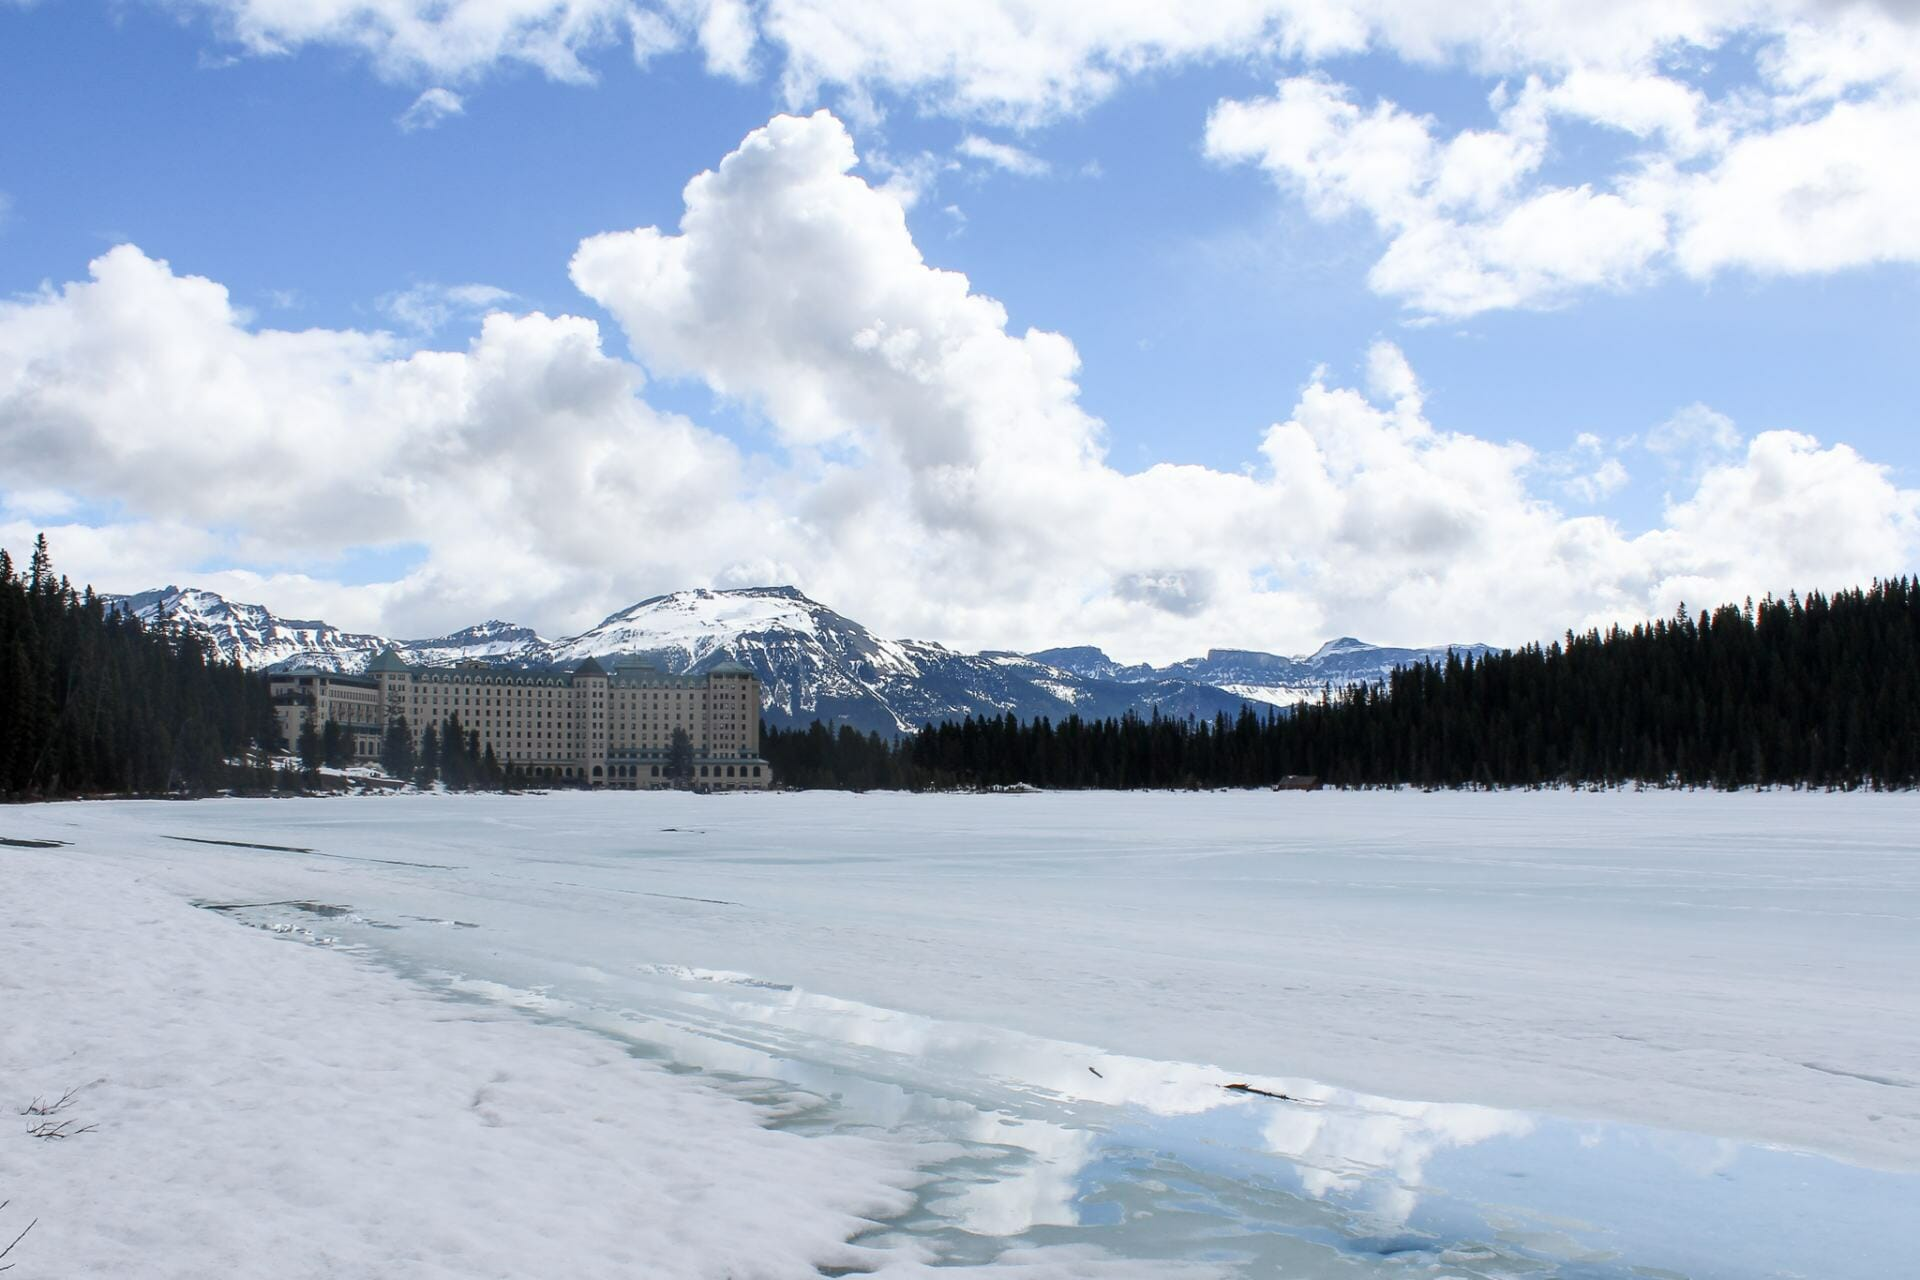 Looking back at Chateau Lake Louise